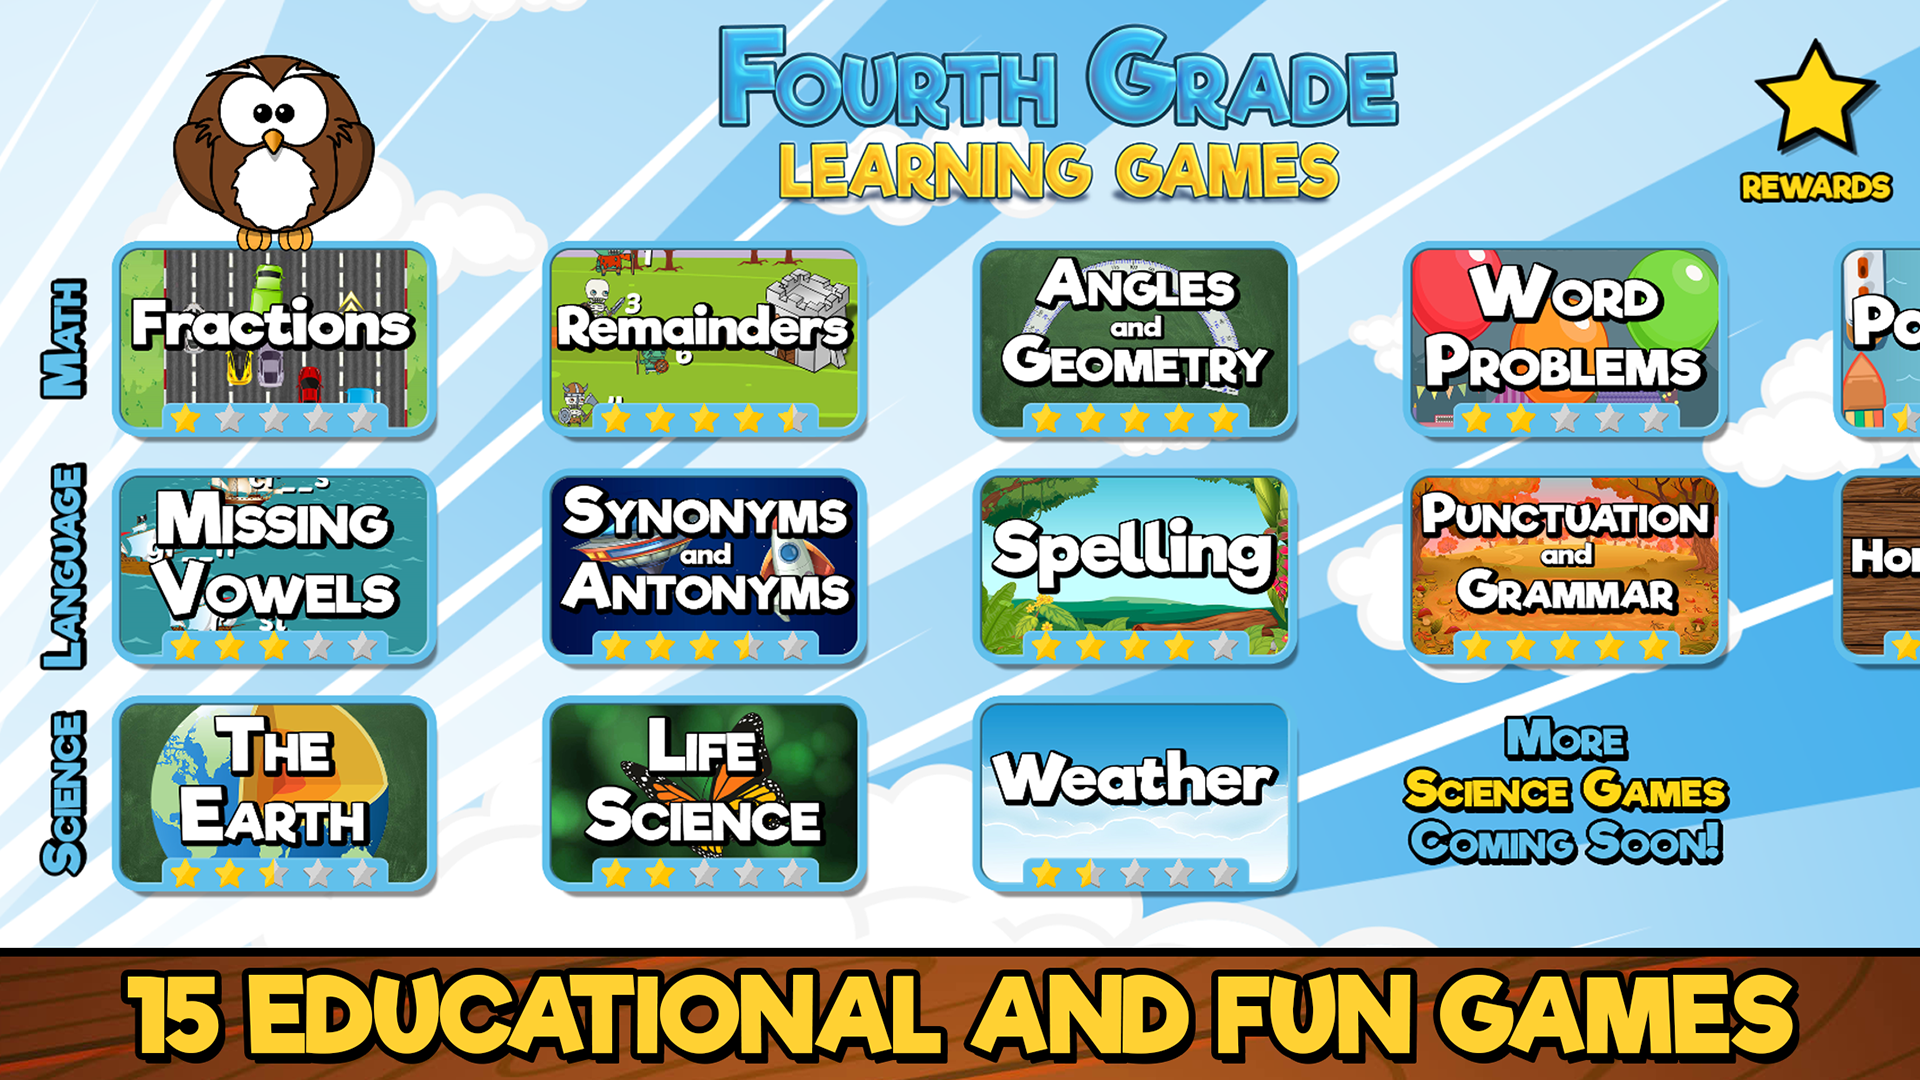 Amazon.com: Fourth Grade Learning Games Free: Appstore for Android